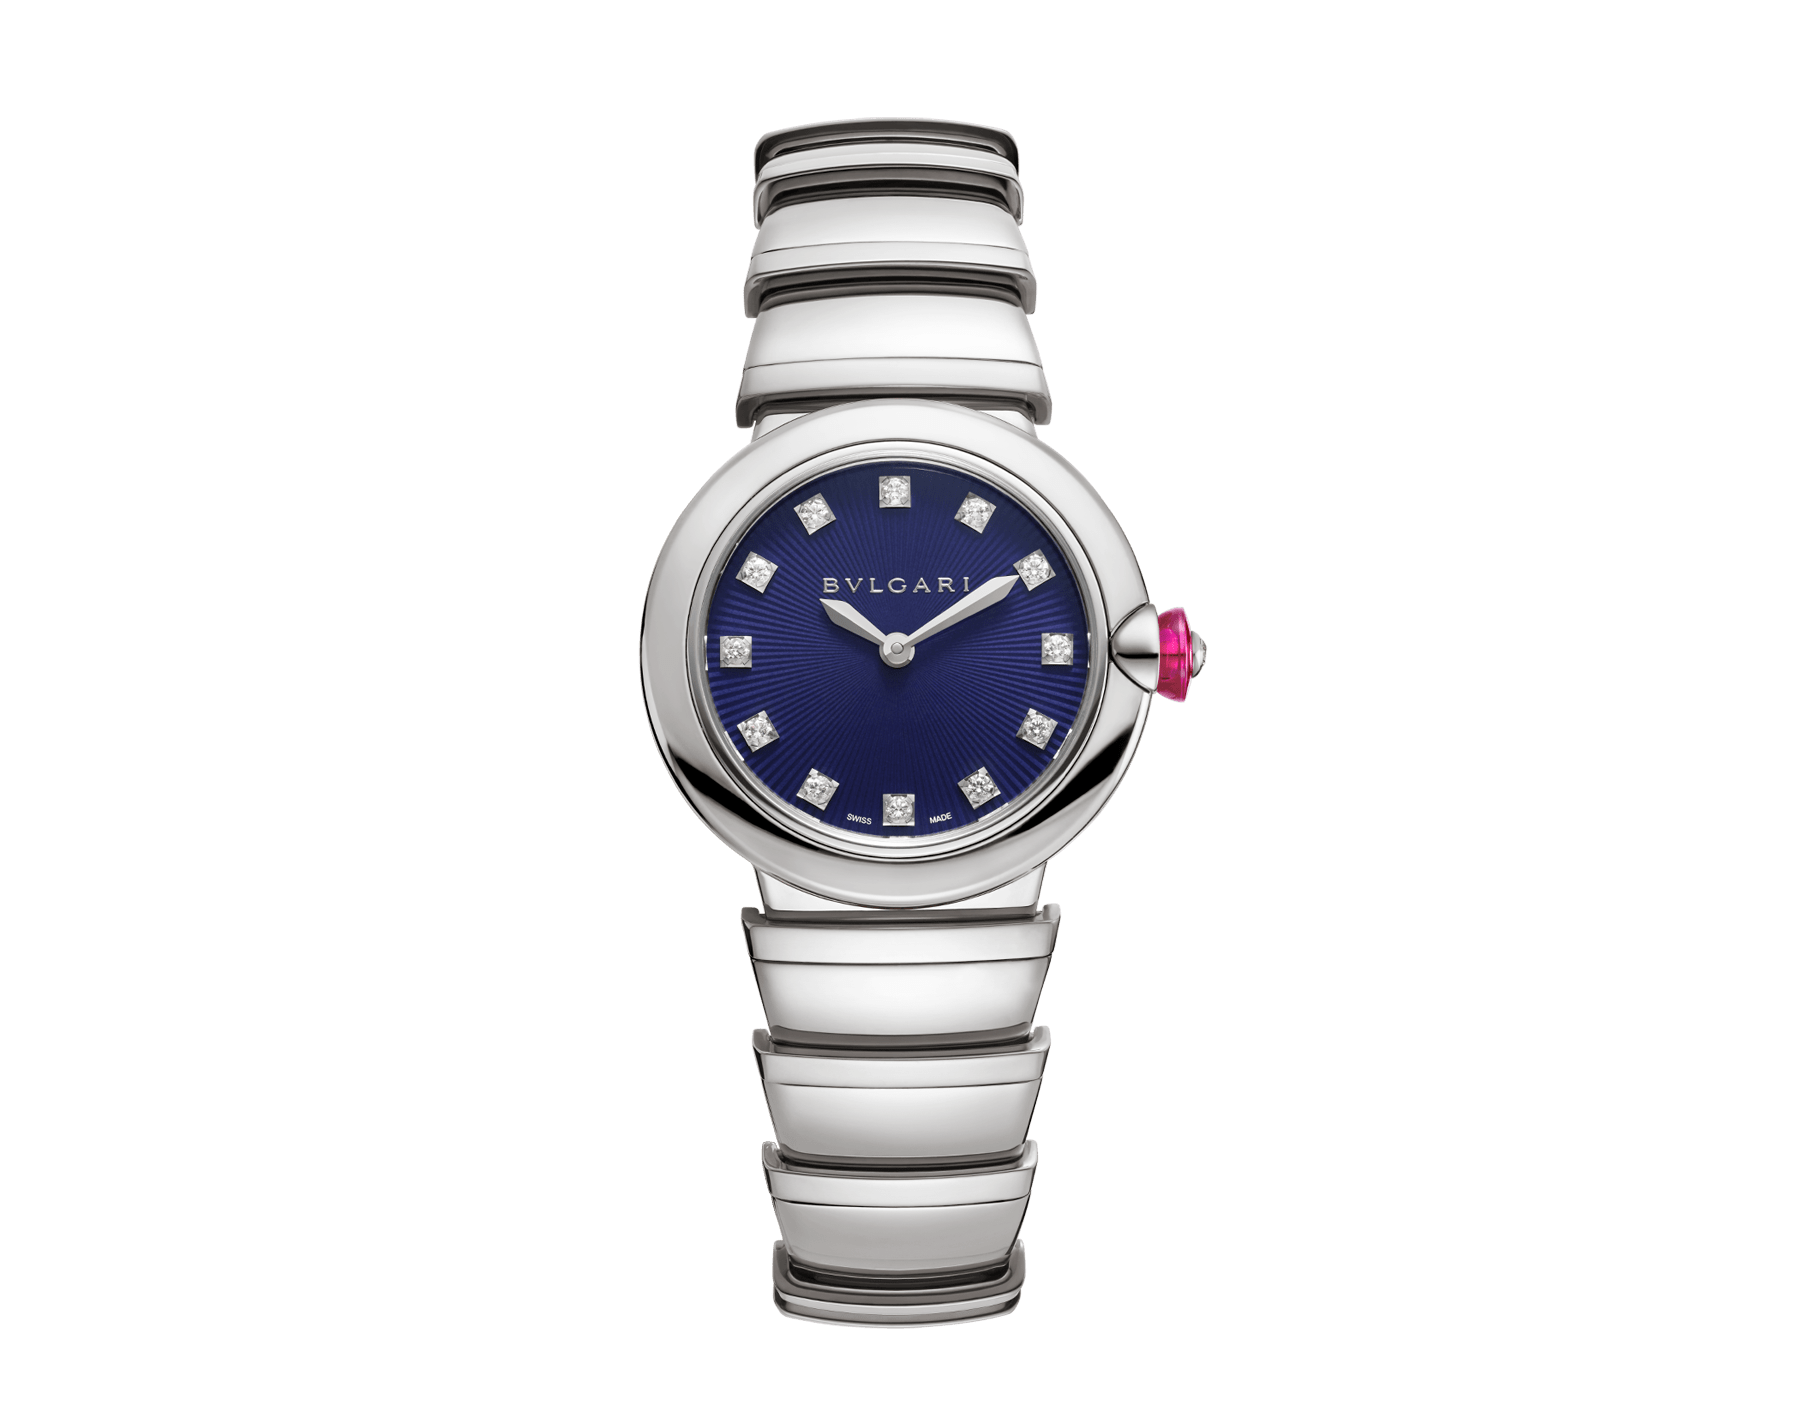 LVCEA watch in stainless steel case and bracelet, with blue dial and diamond indexes. 102568 image 1